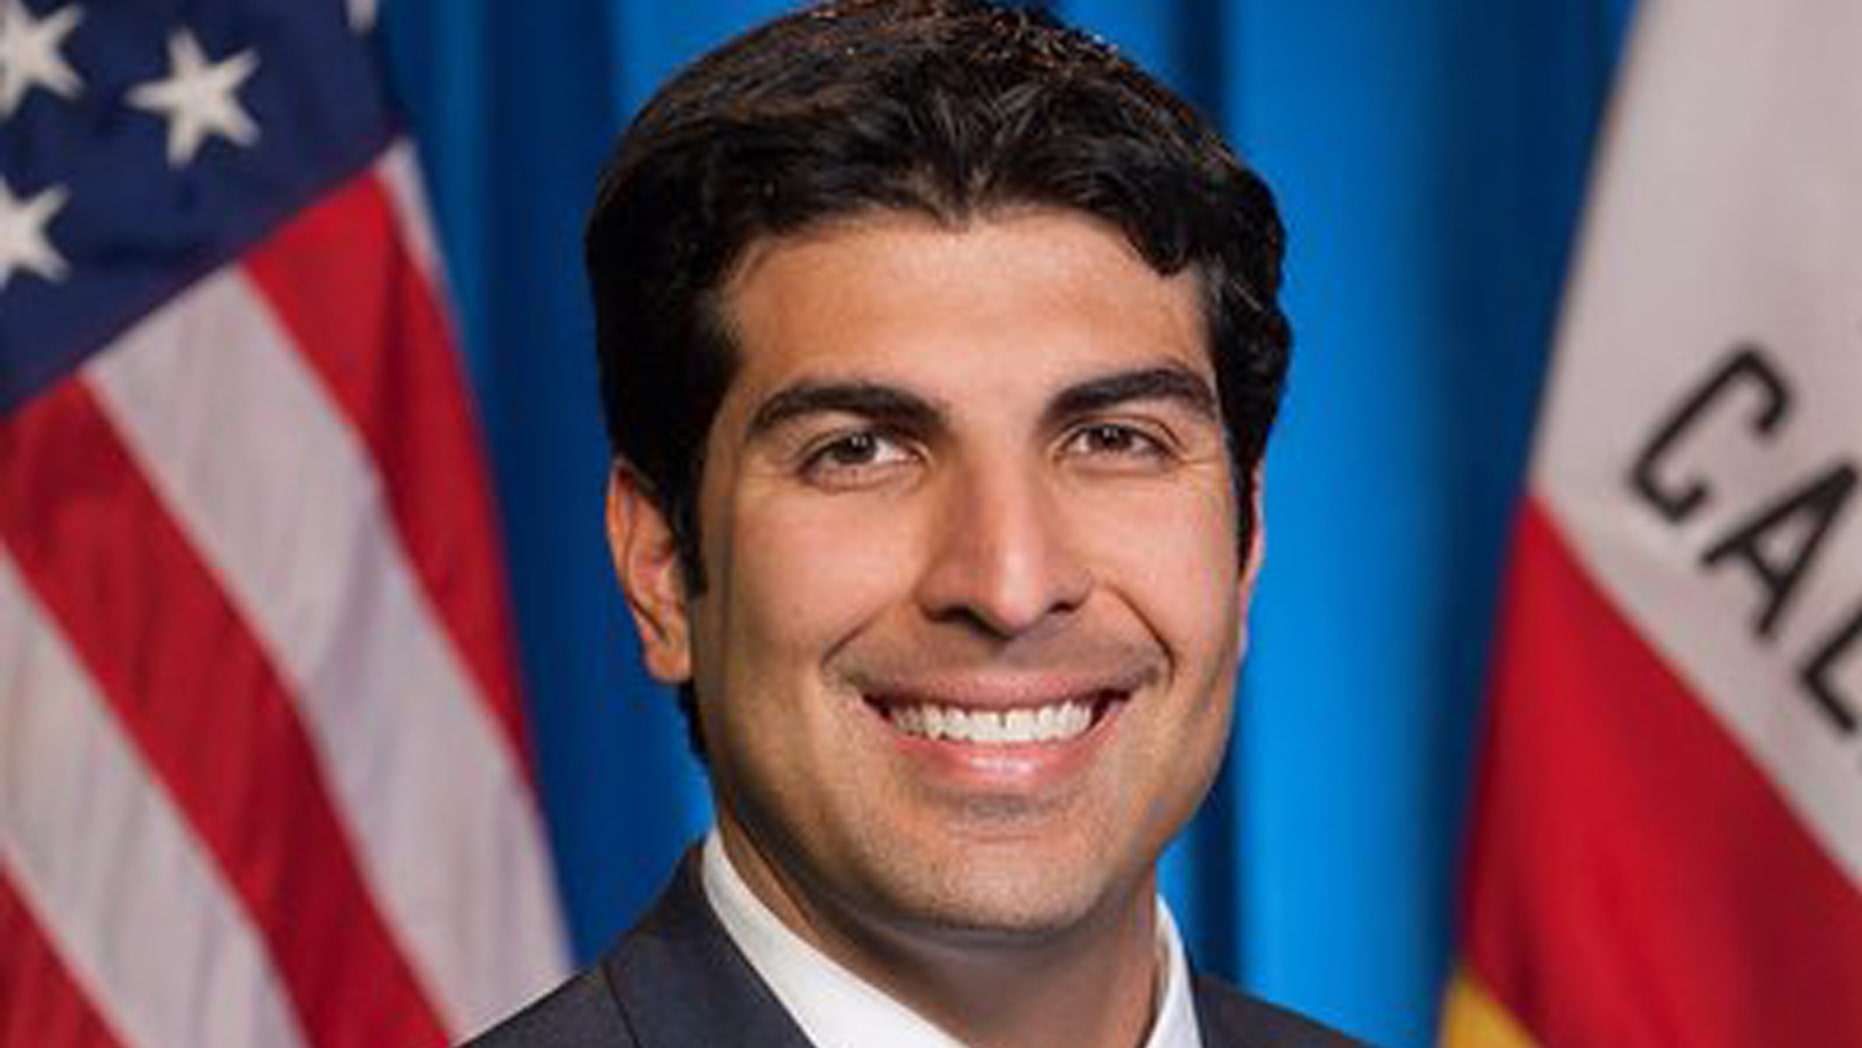 Matt Dababneh, 37, who resigned after being accused of sexual misconduct by multiple women, has transferred more than $1 million to his lieutenant governor campaign account, according to a campaign finance report filed Tuesday.